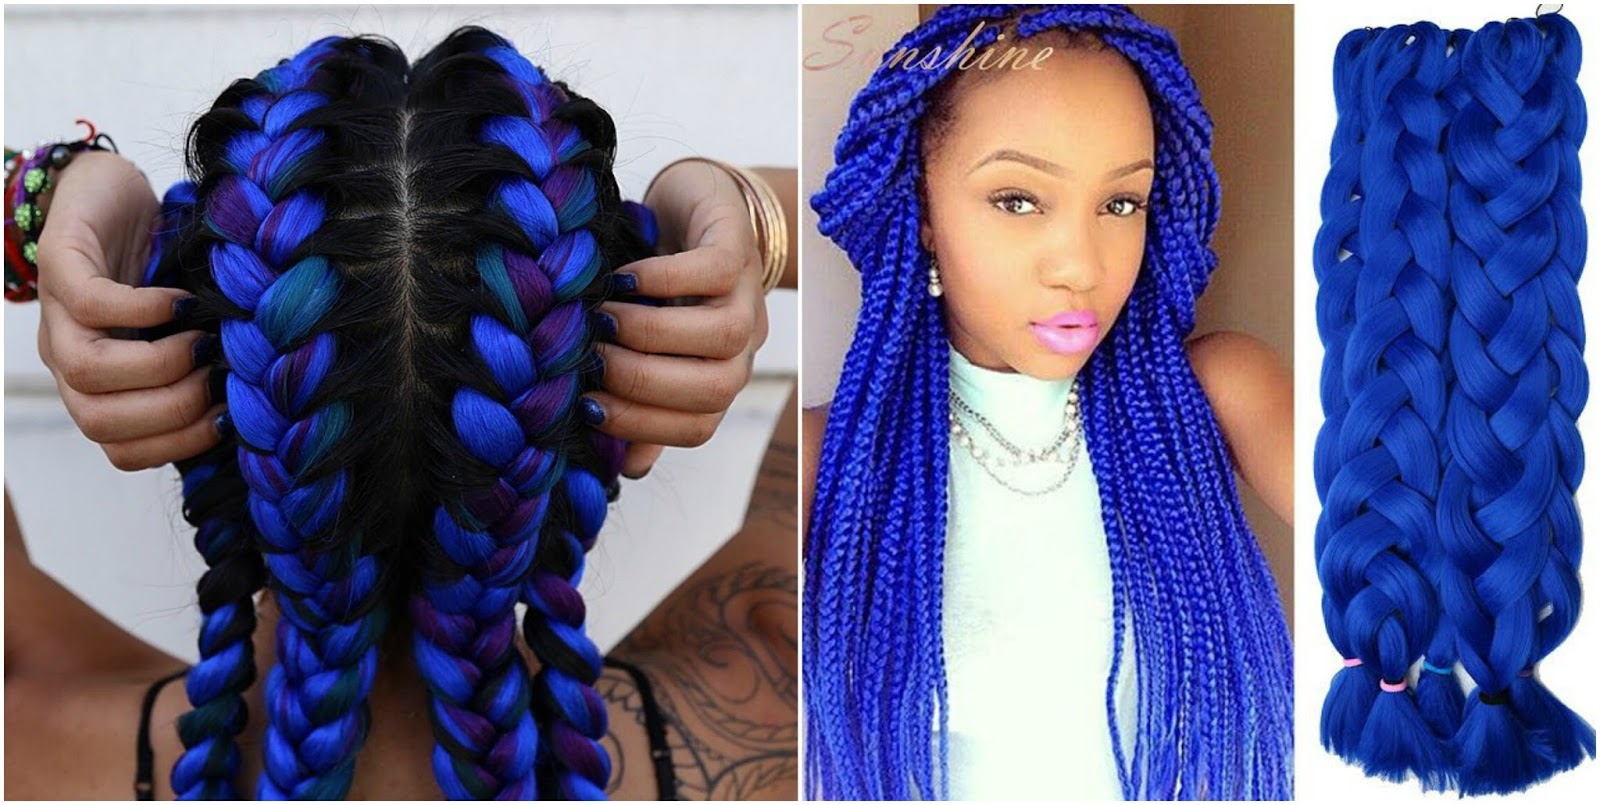 Colorful Summer Box Braid Hair Styles M 201 L 210 D 221 Jac 210 B